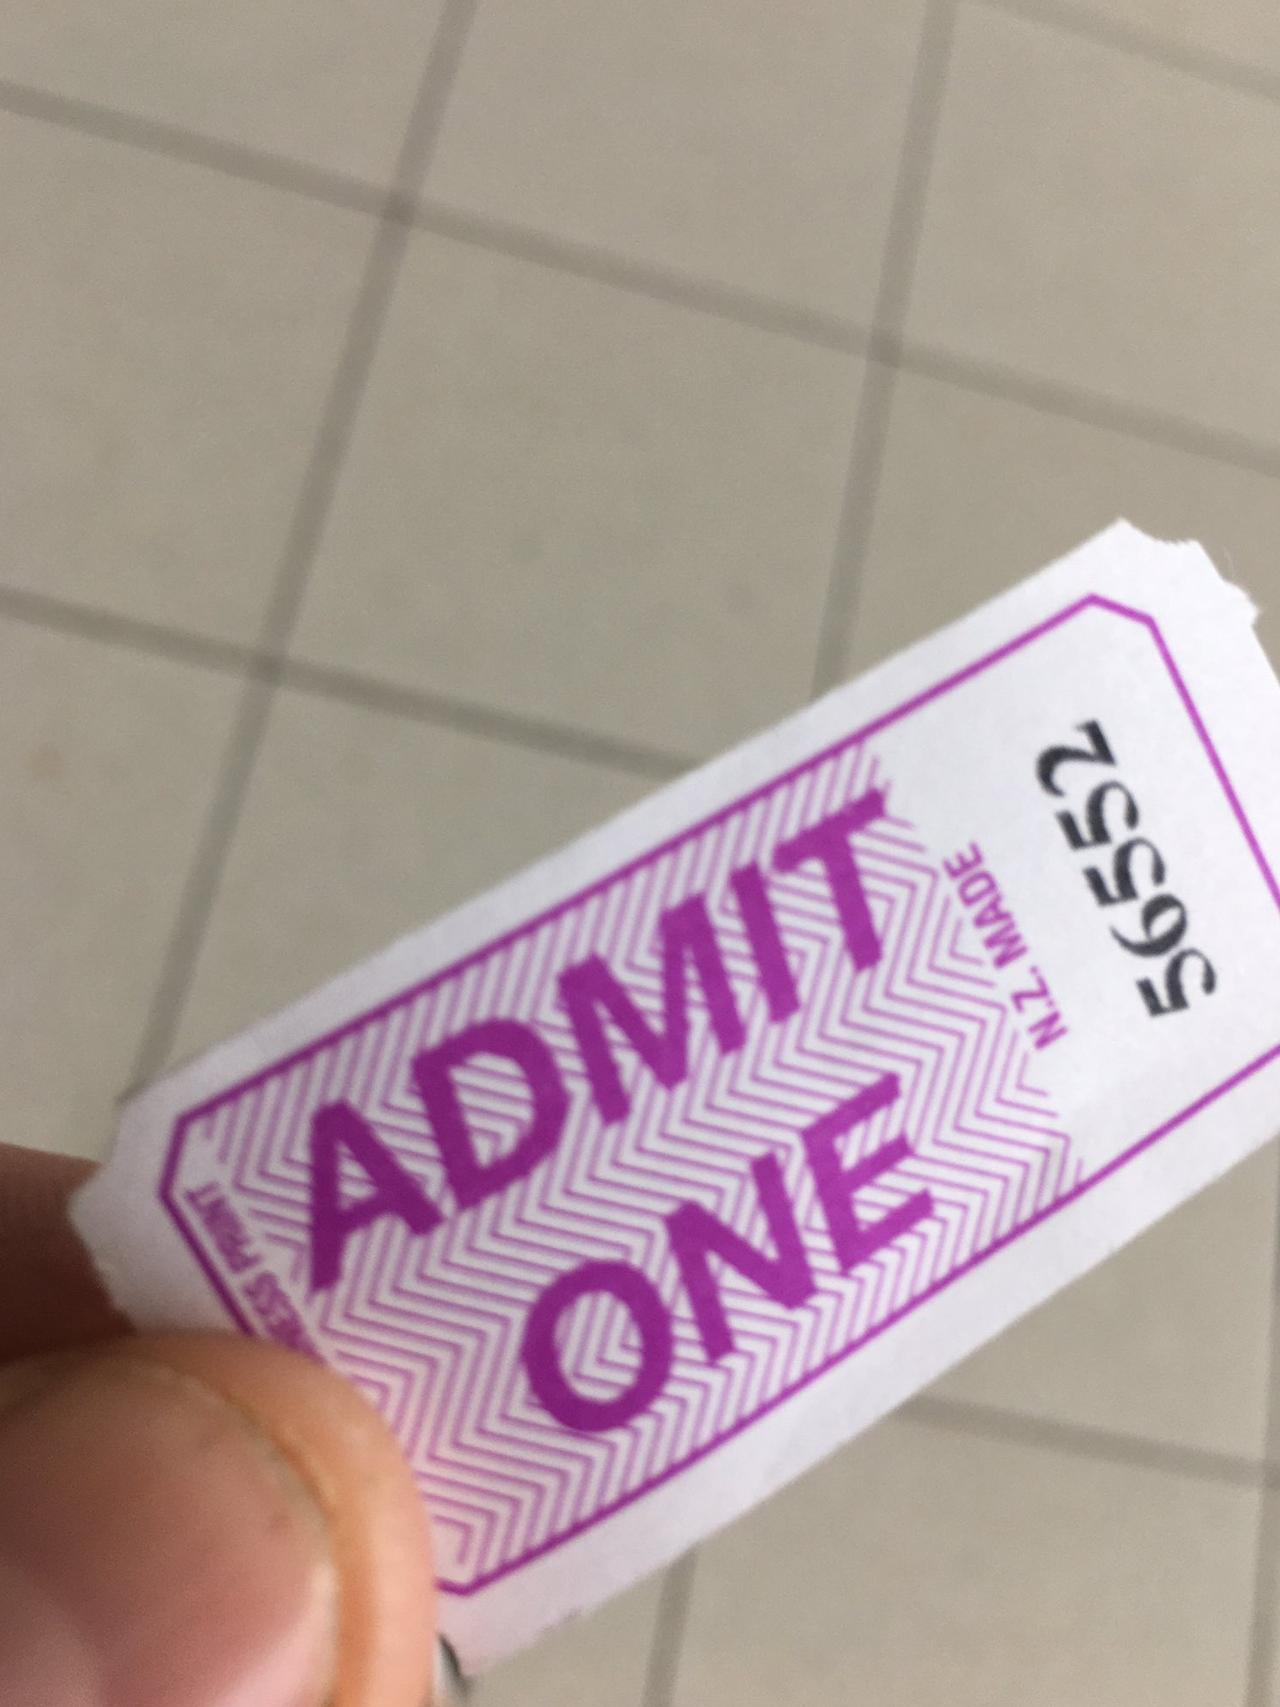 One ticket. Picture: Twitter / @truthsetufree17